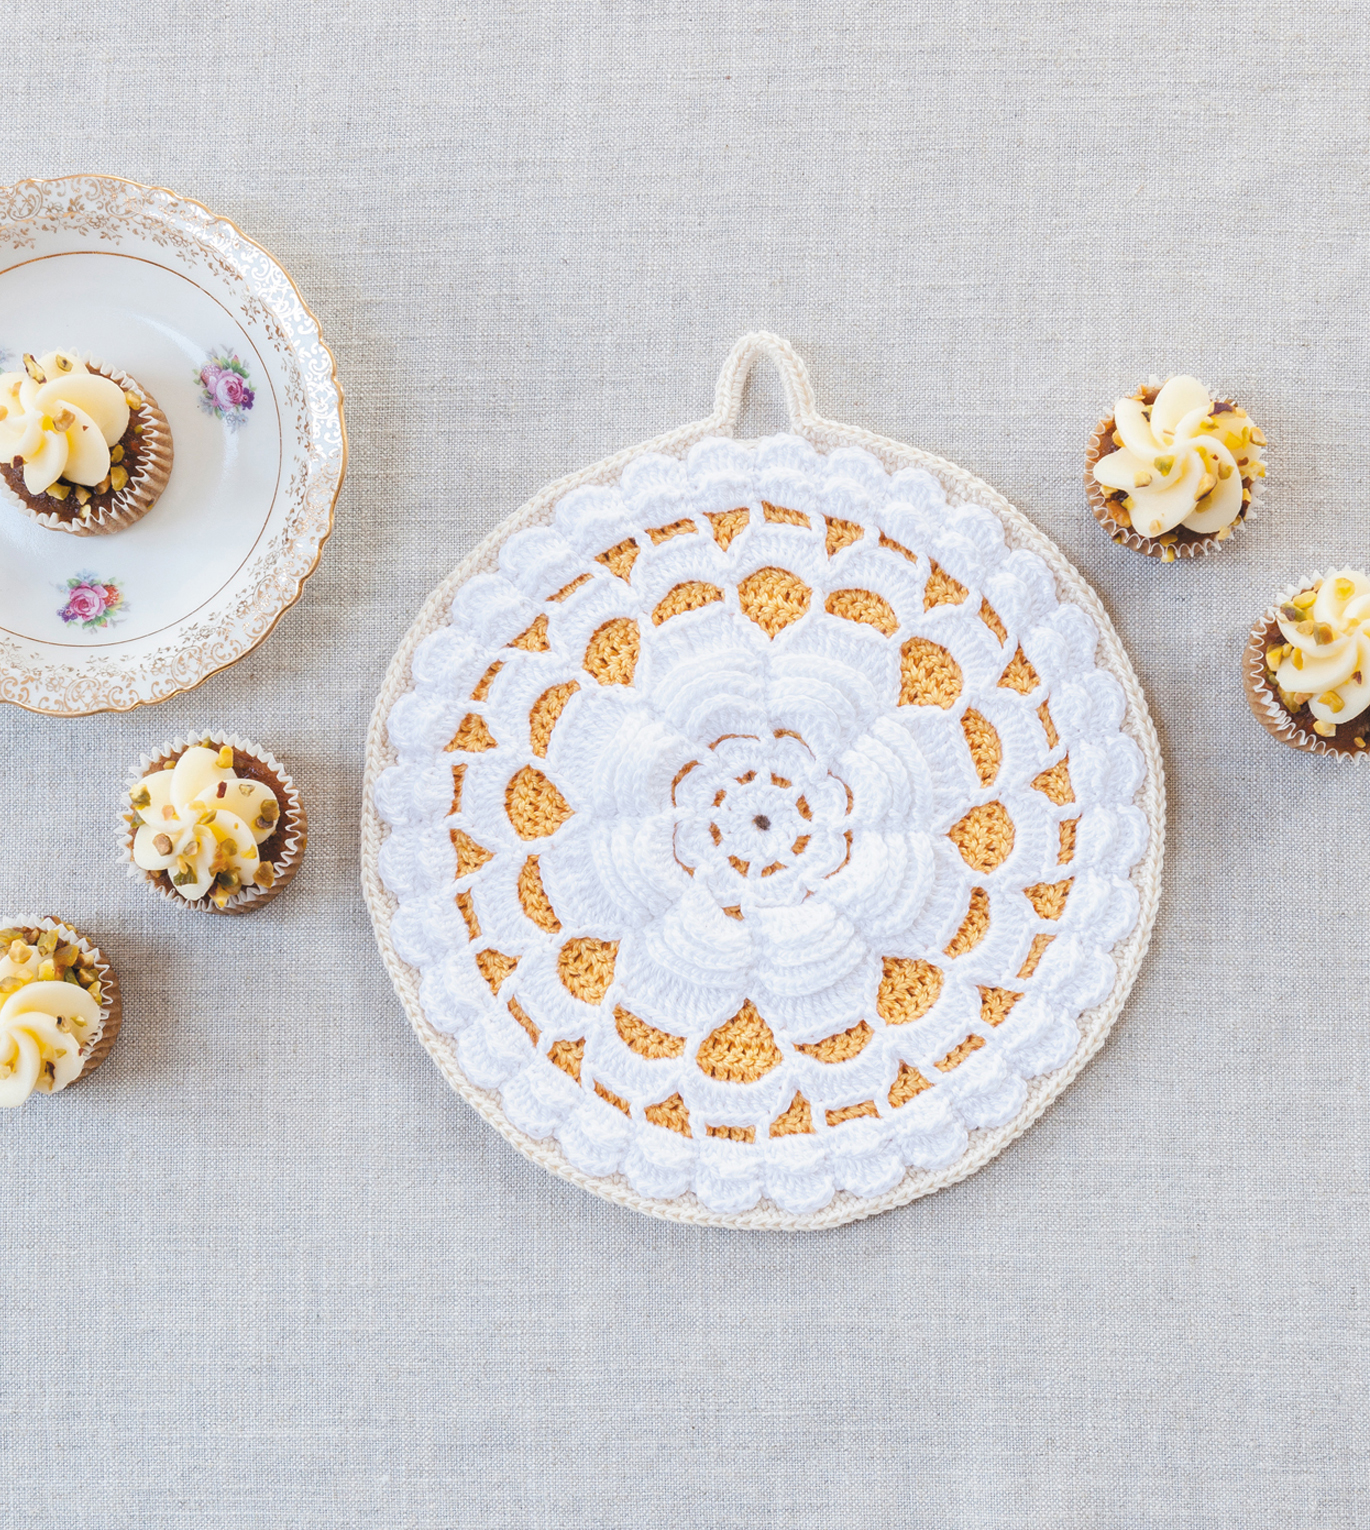 Fabulous Rose Pothlder from Crochet Home by Emma Lamb | Crochet designs and styling by Emma Lamb / Photography by Jason M Jenkins